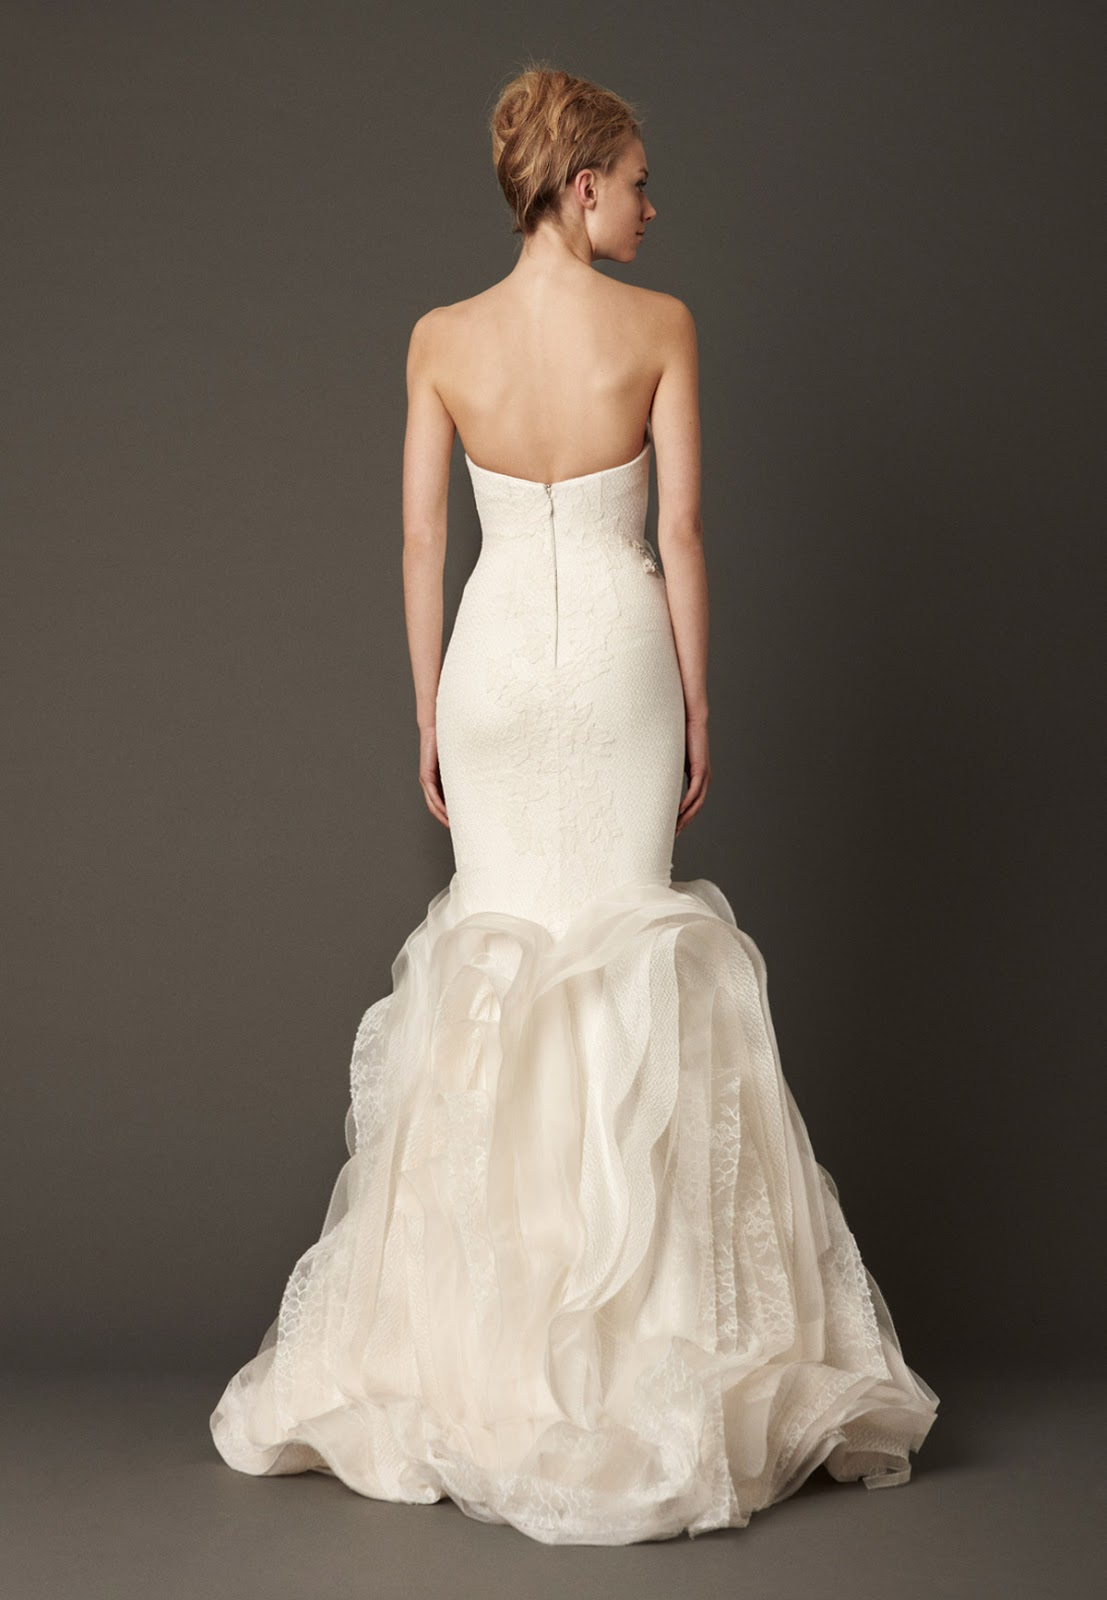 Mermaid Style Wedding Dresses Vera Wang : Dressybridal vera wang fall ruffled wedding gowns